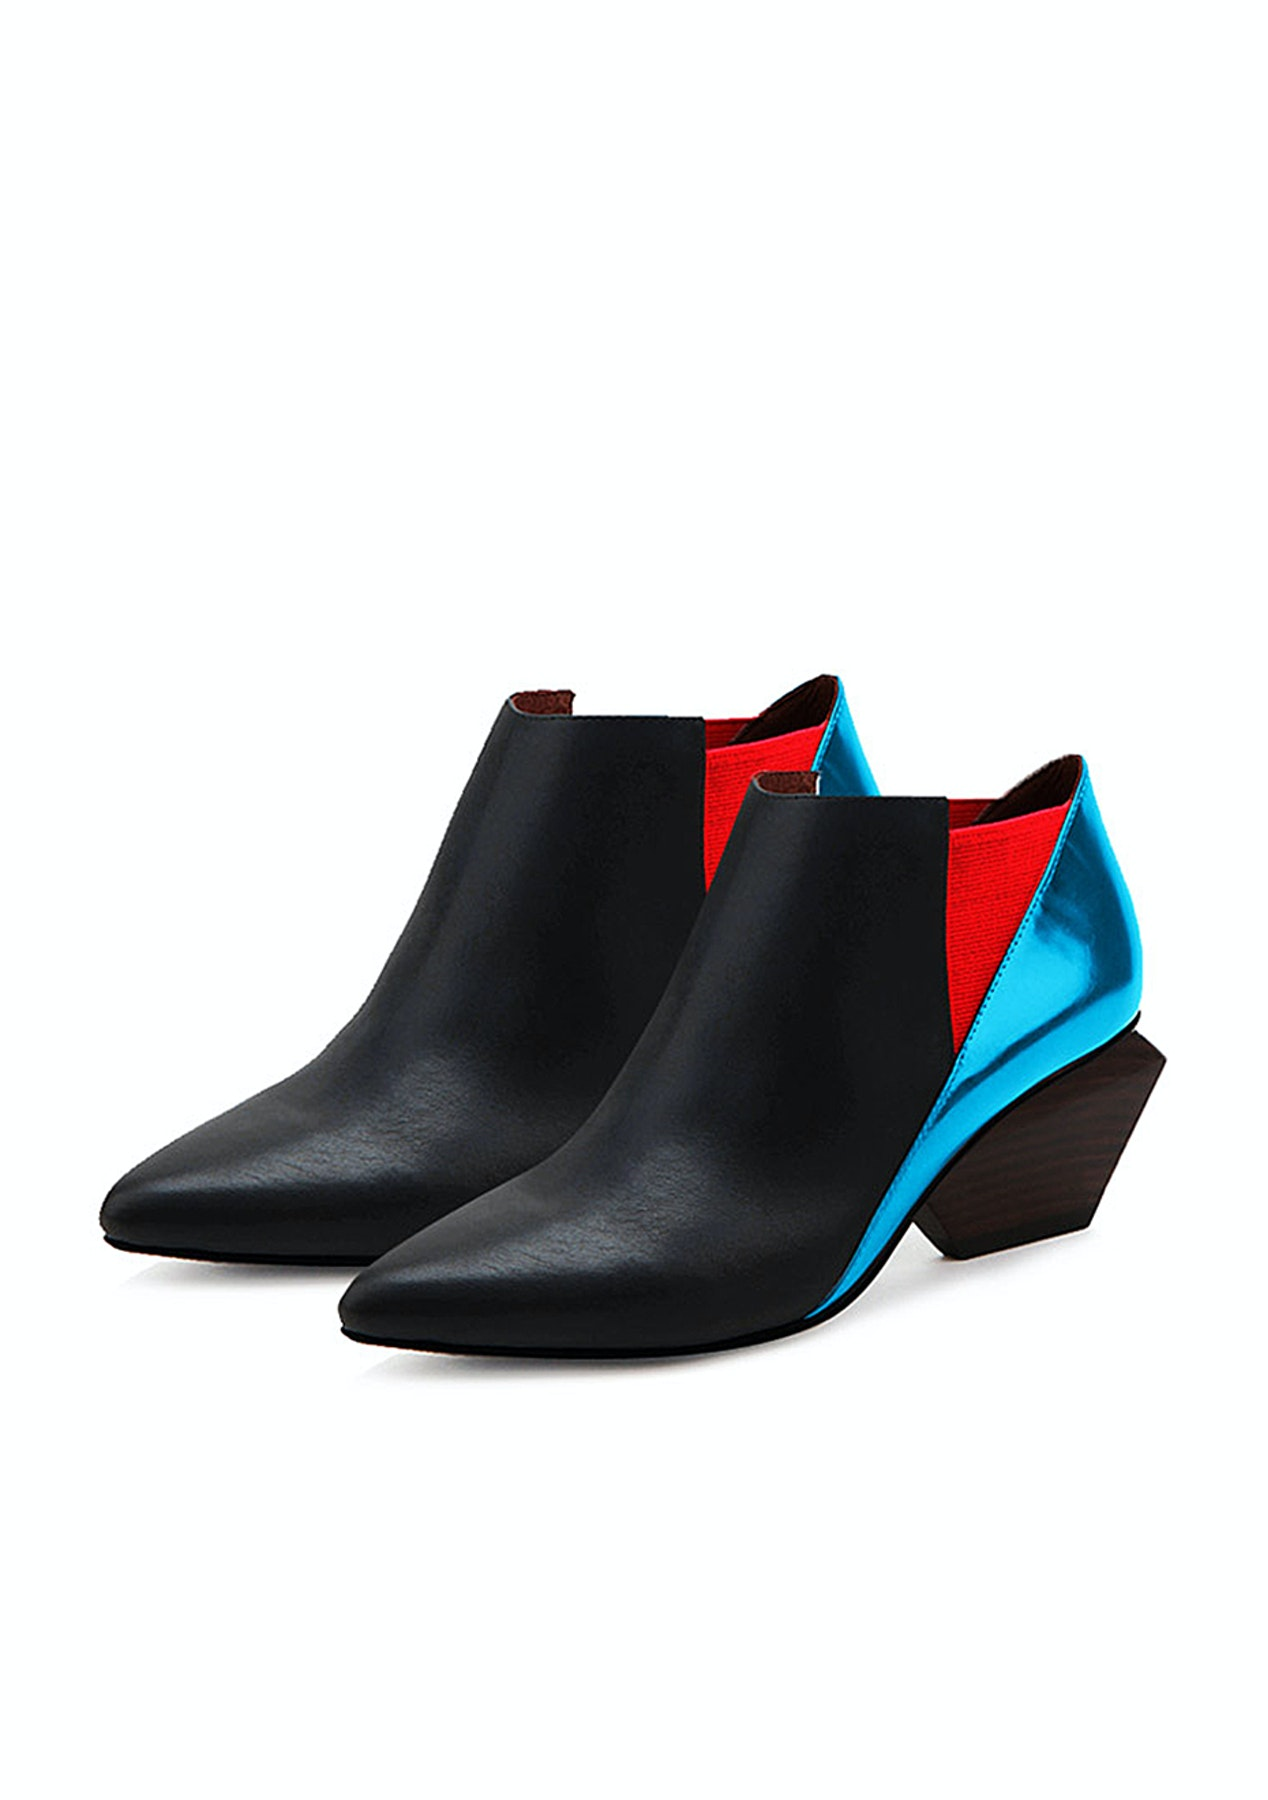 215a0ce4db5b Jady Rose - Boots - Blue - Boxing Day Shoes - Onceit